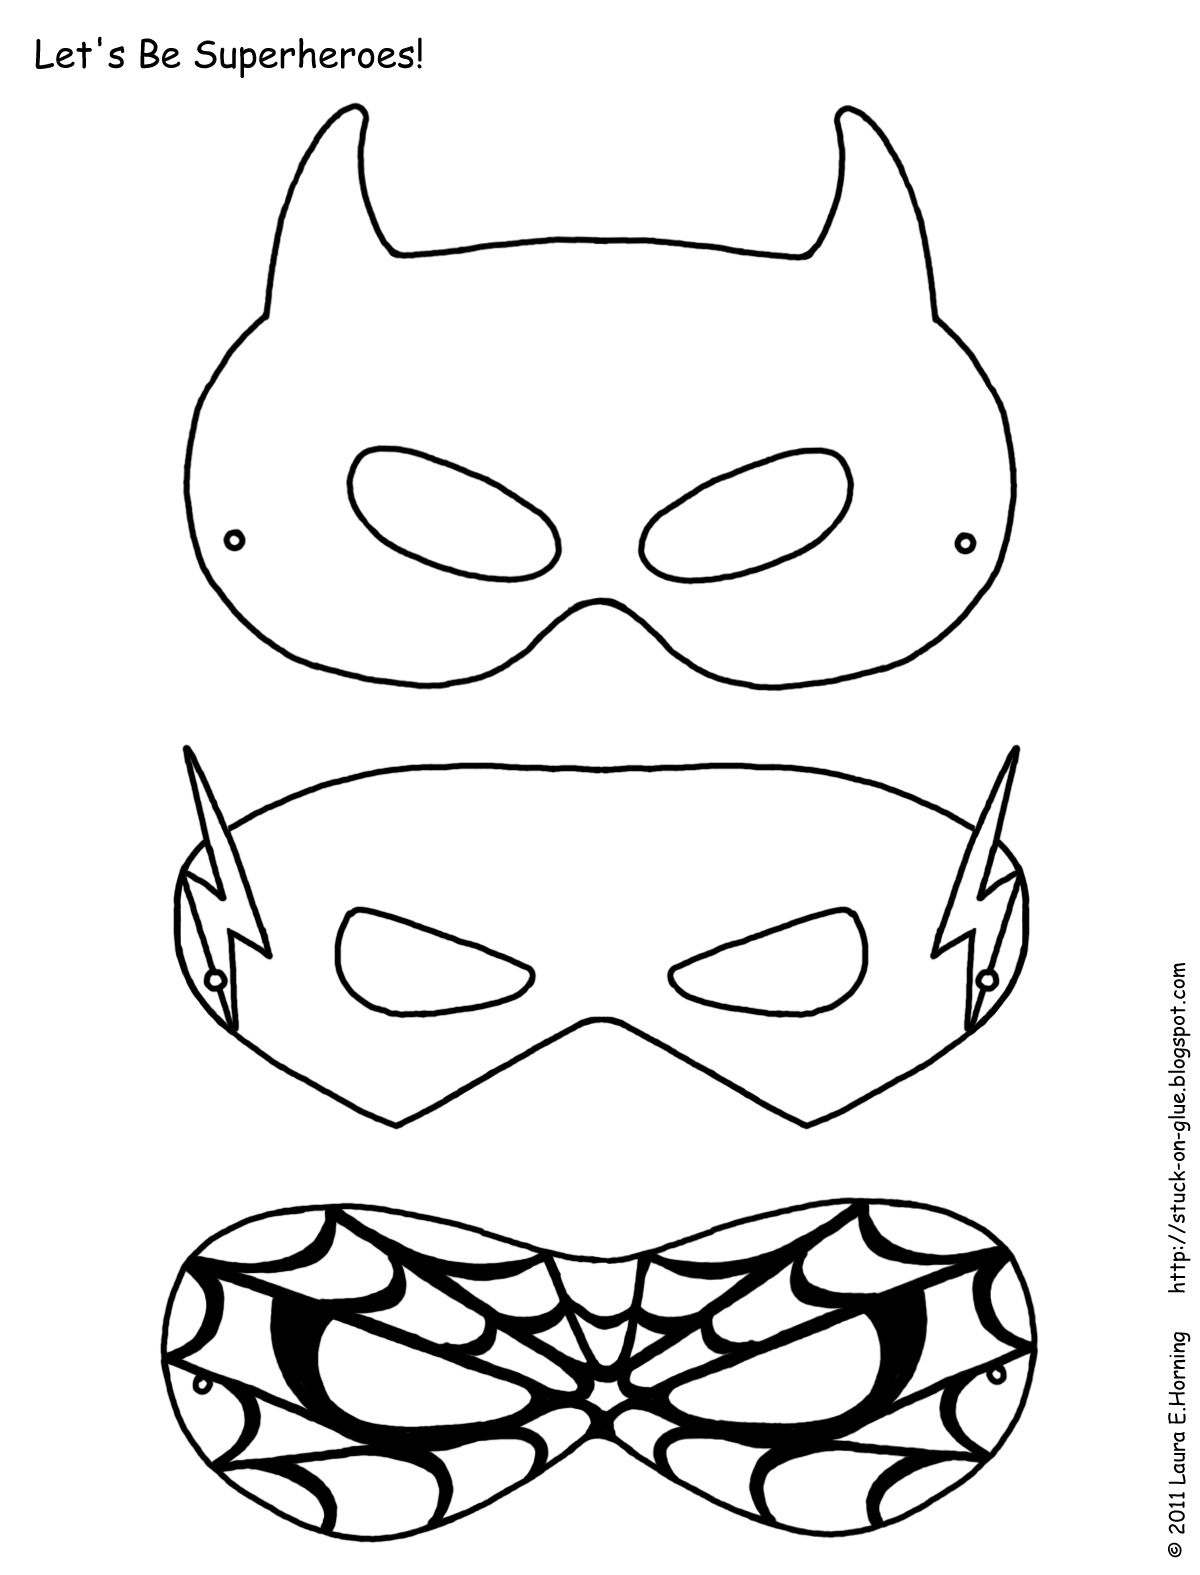 Mask Printable | Free Printable Superhero Mask Template | Masks - Superman Mask Printable Free